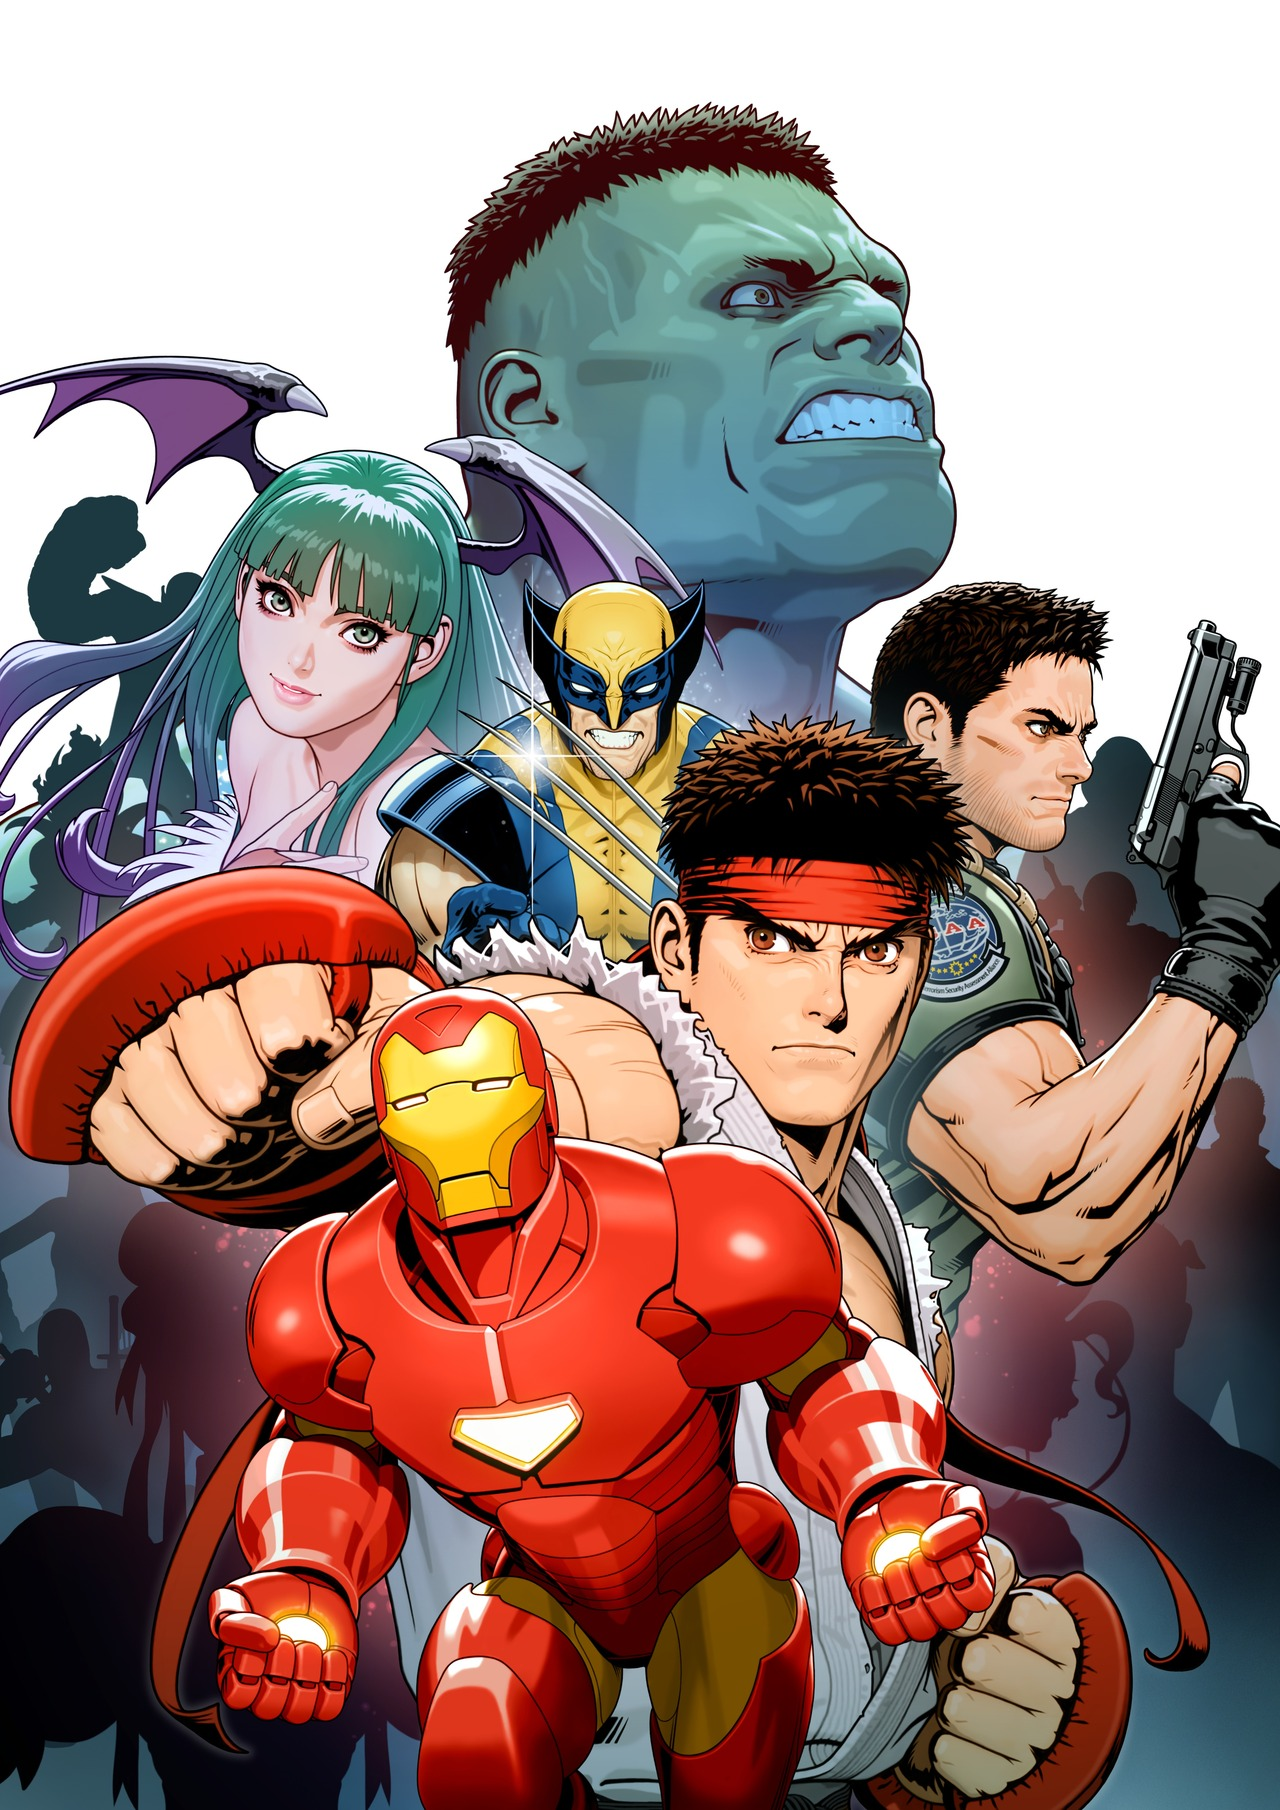 Marvel vs Capcom 3 : Fate of Two Worlds Playstation 3 | 10